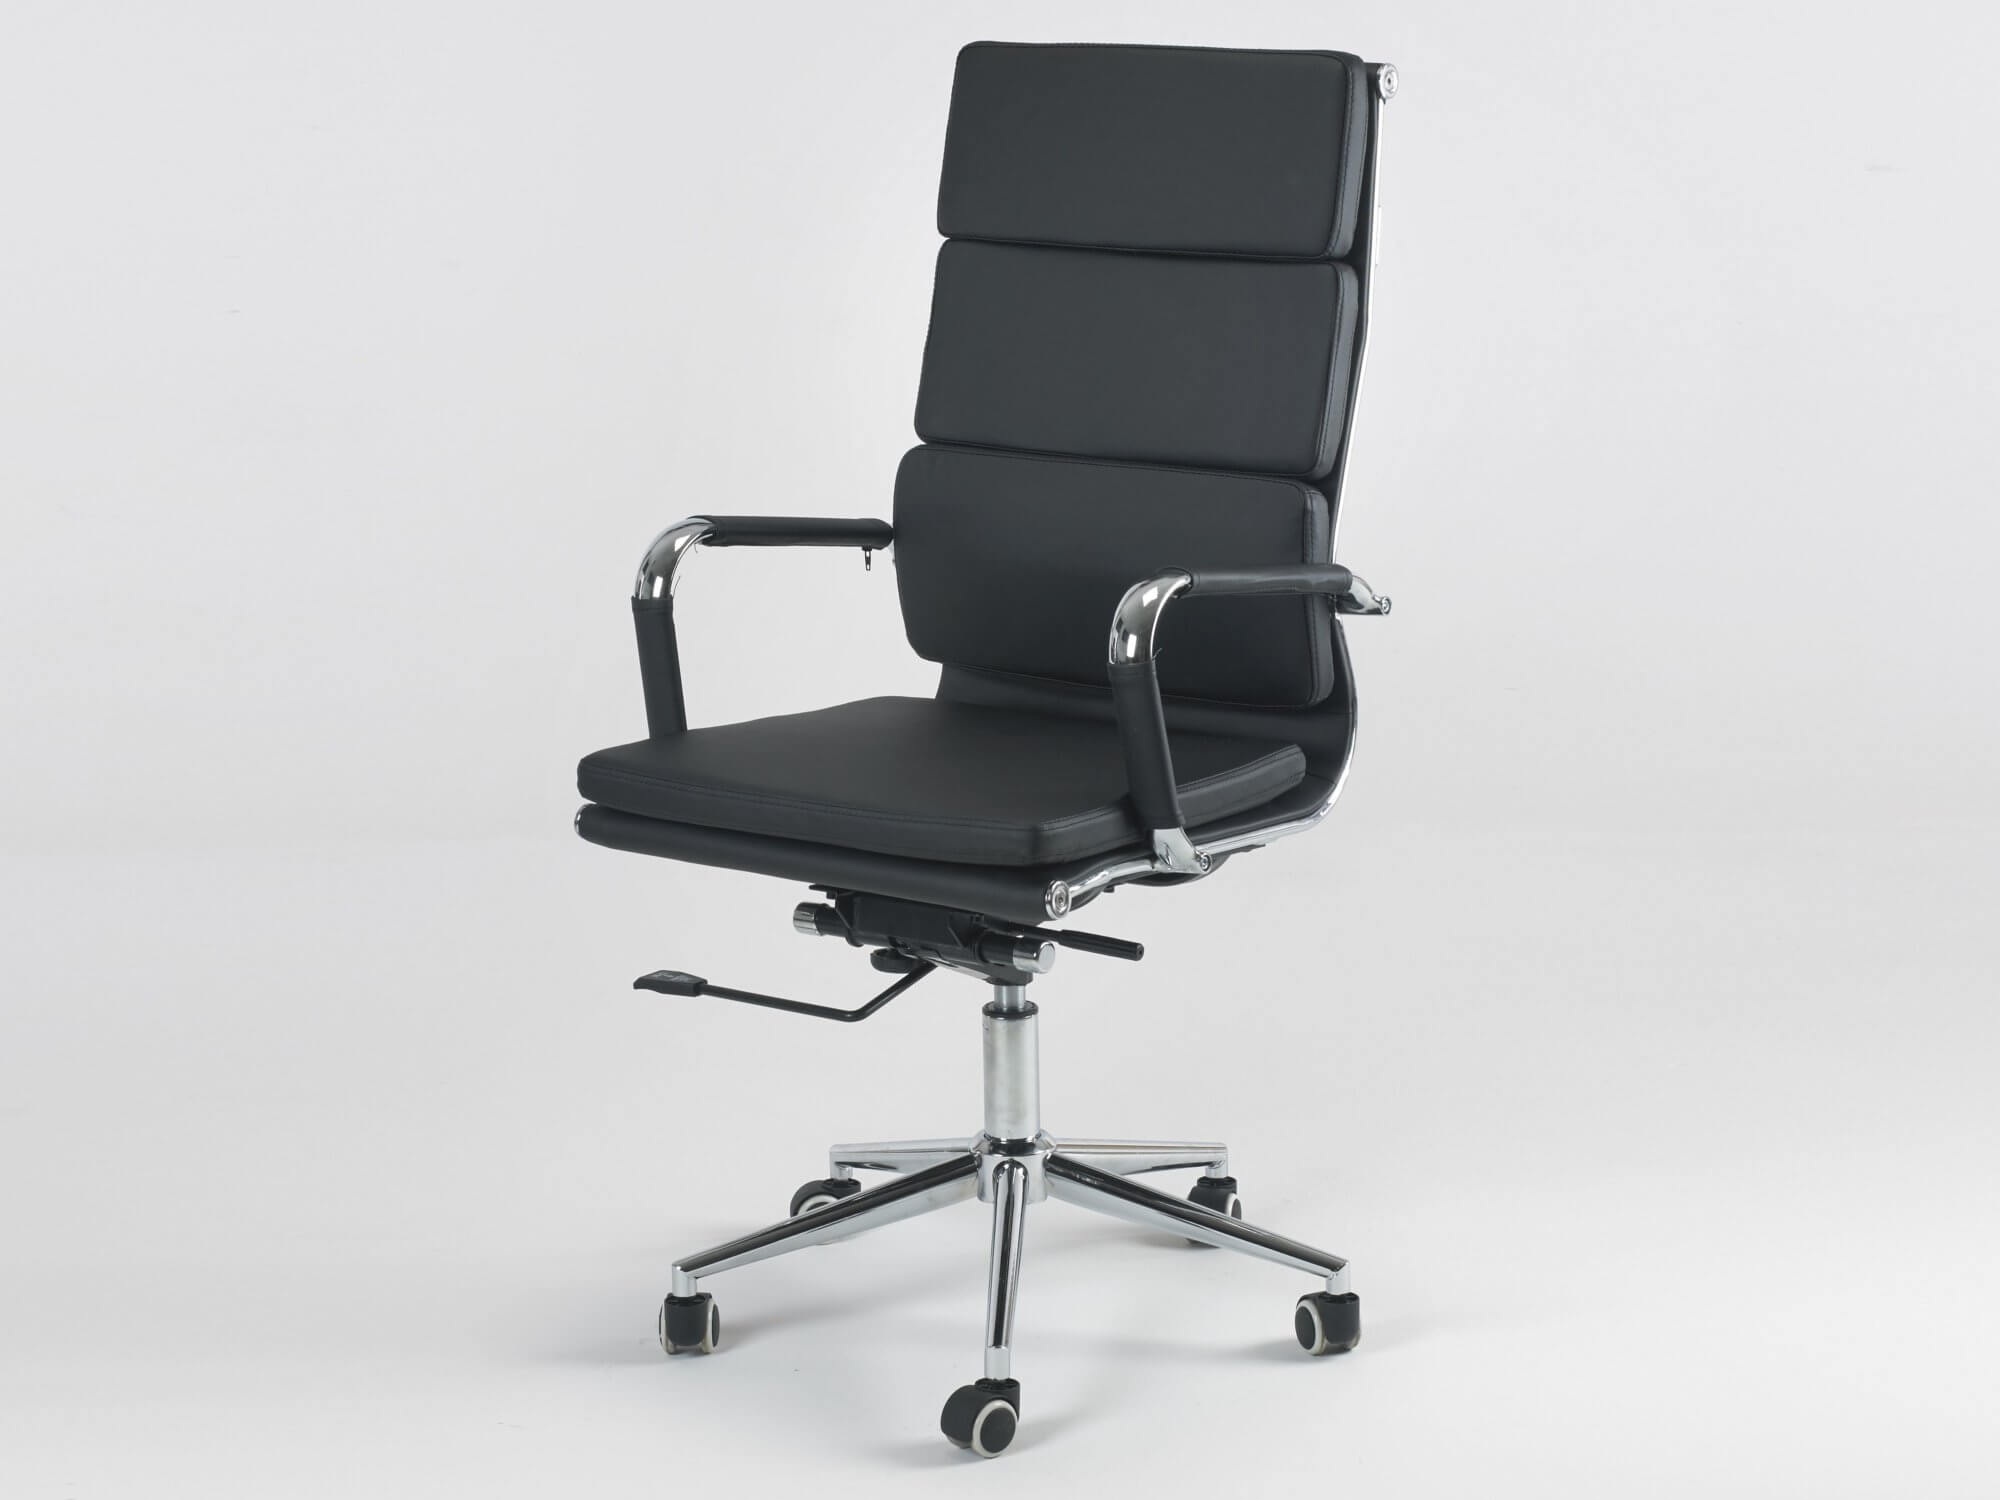 Making shopping for office furniture simple clear and good value